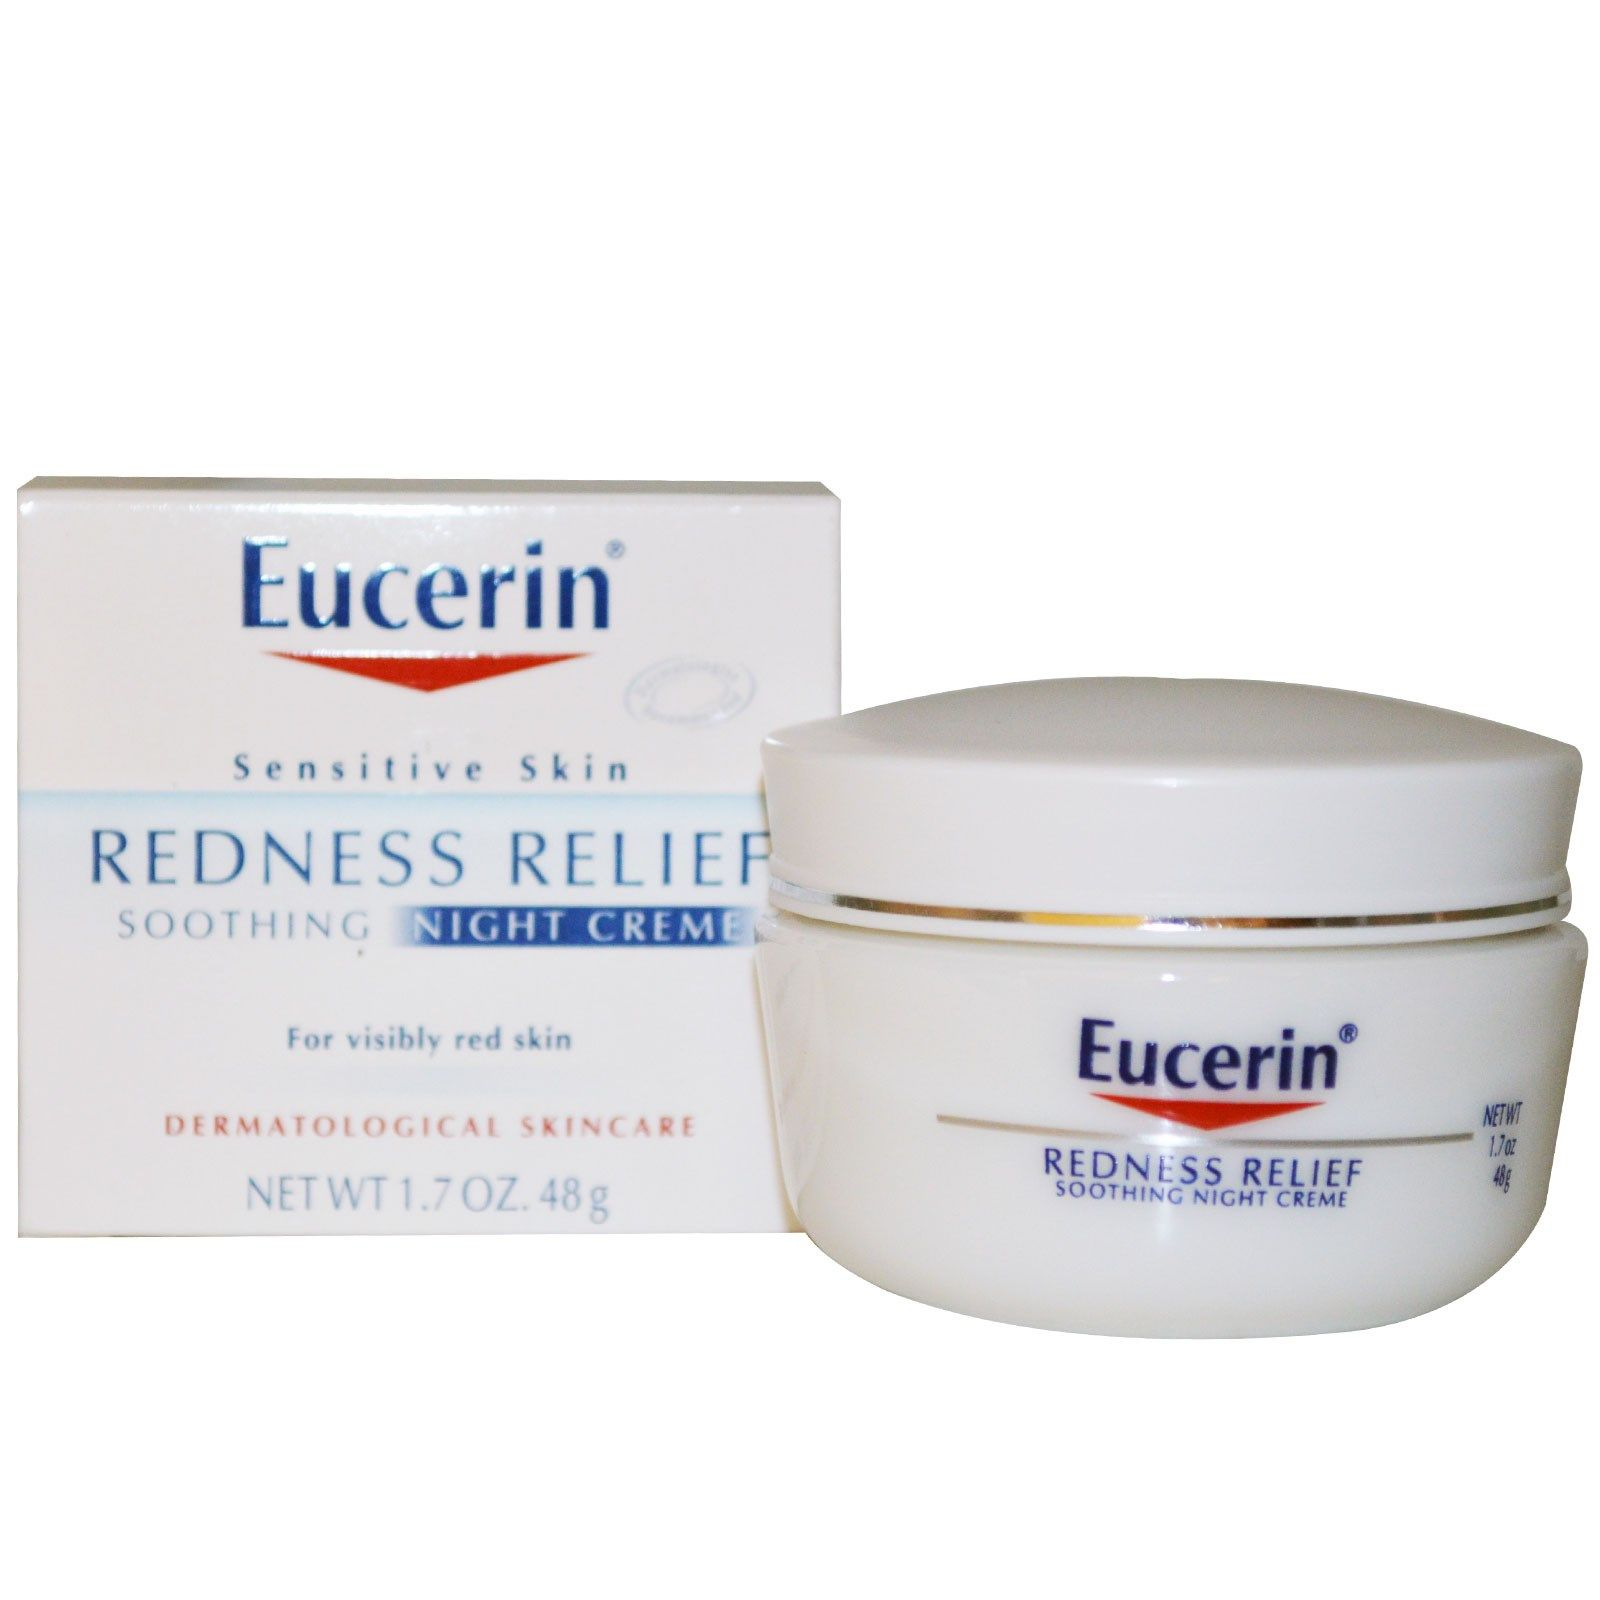 eucerin dermatological skin care